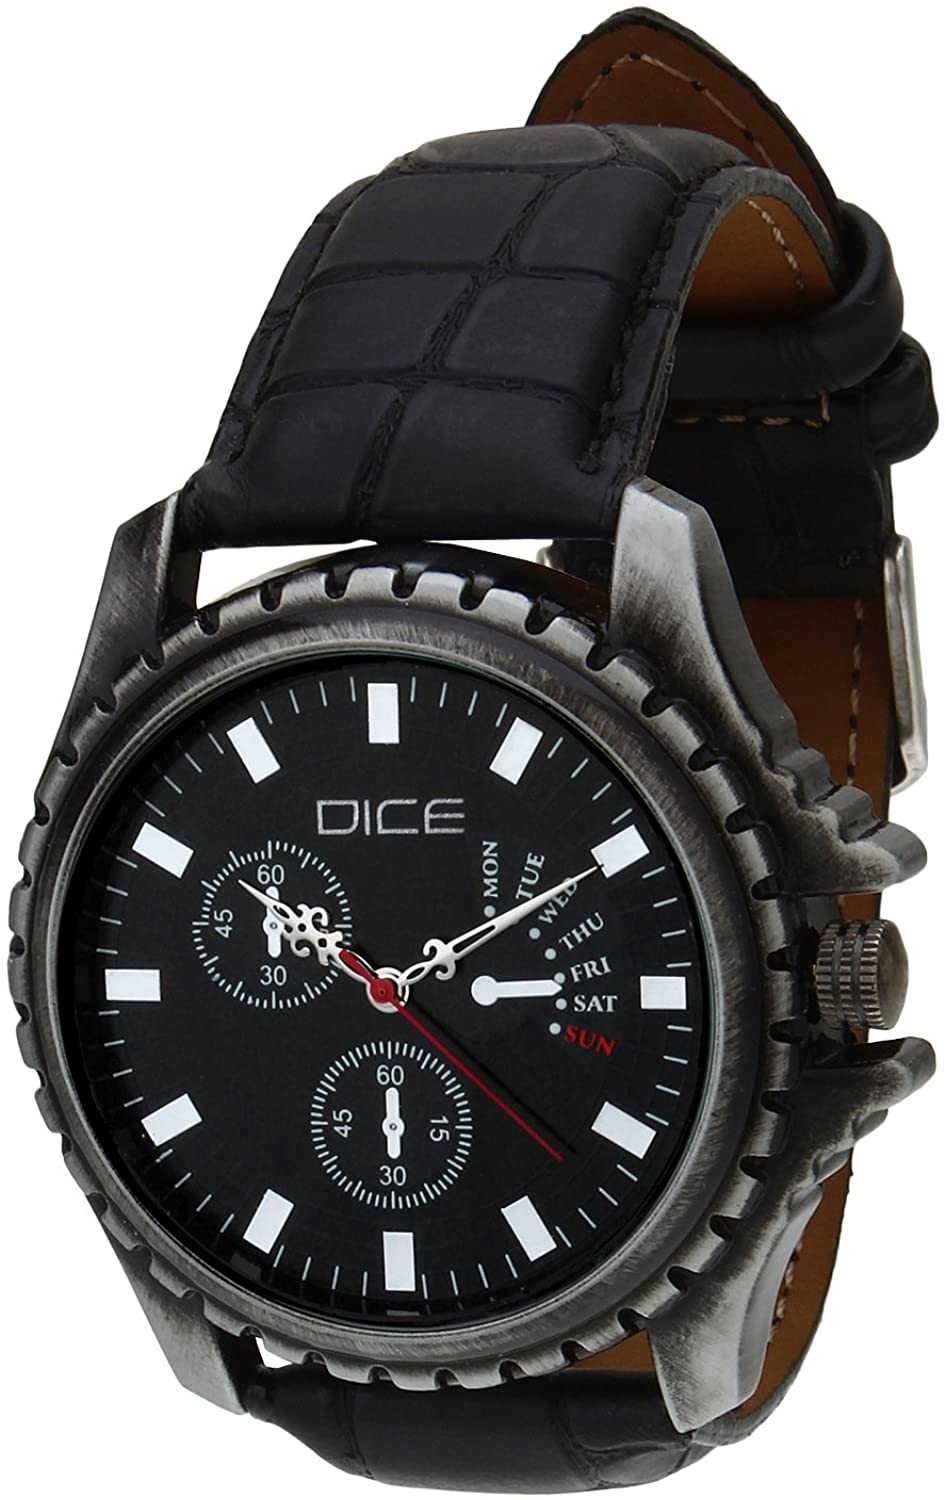 Dice Analogue Black Dial Watch For Men EXPSG-B178-2907